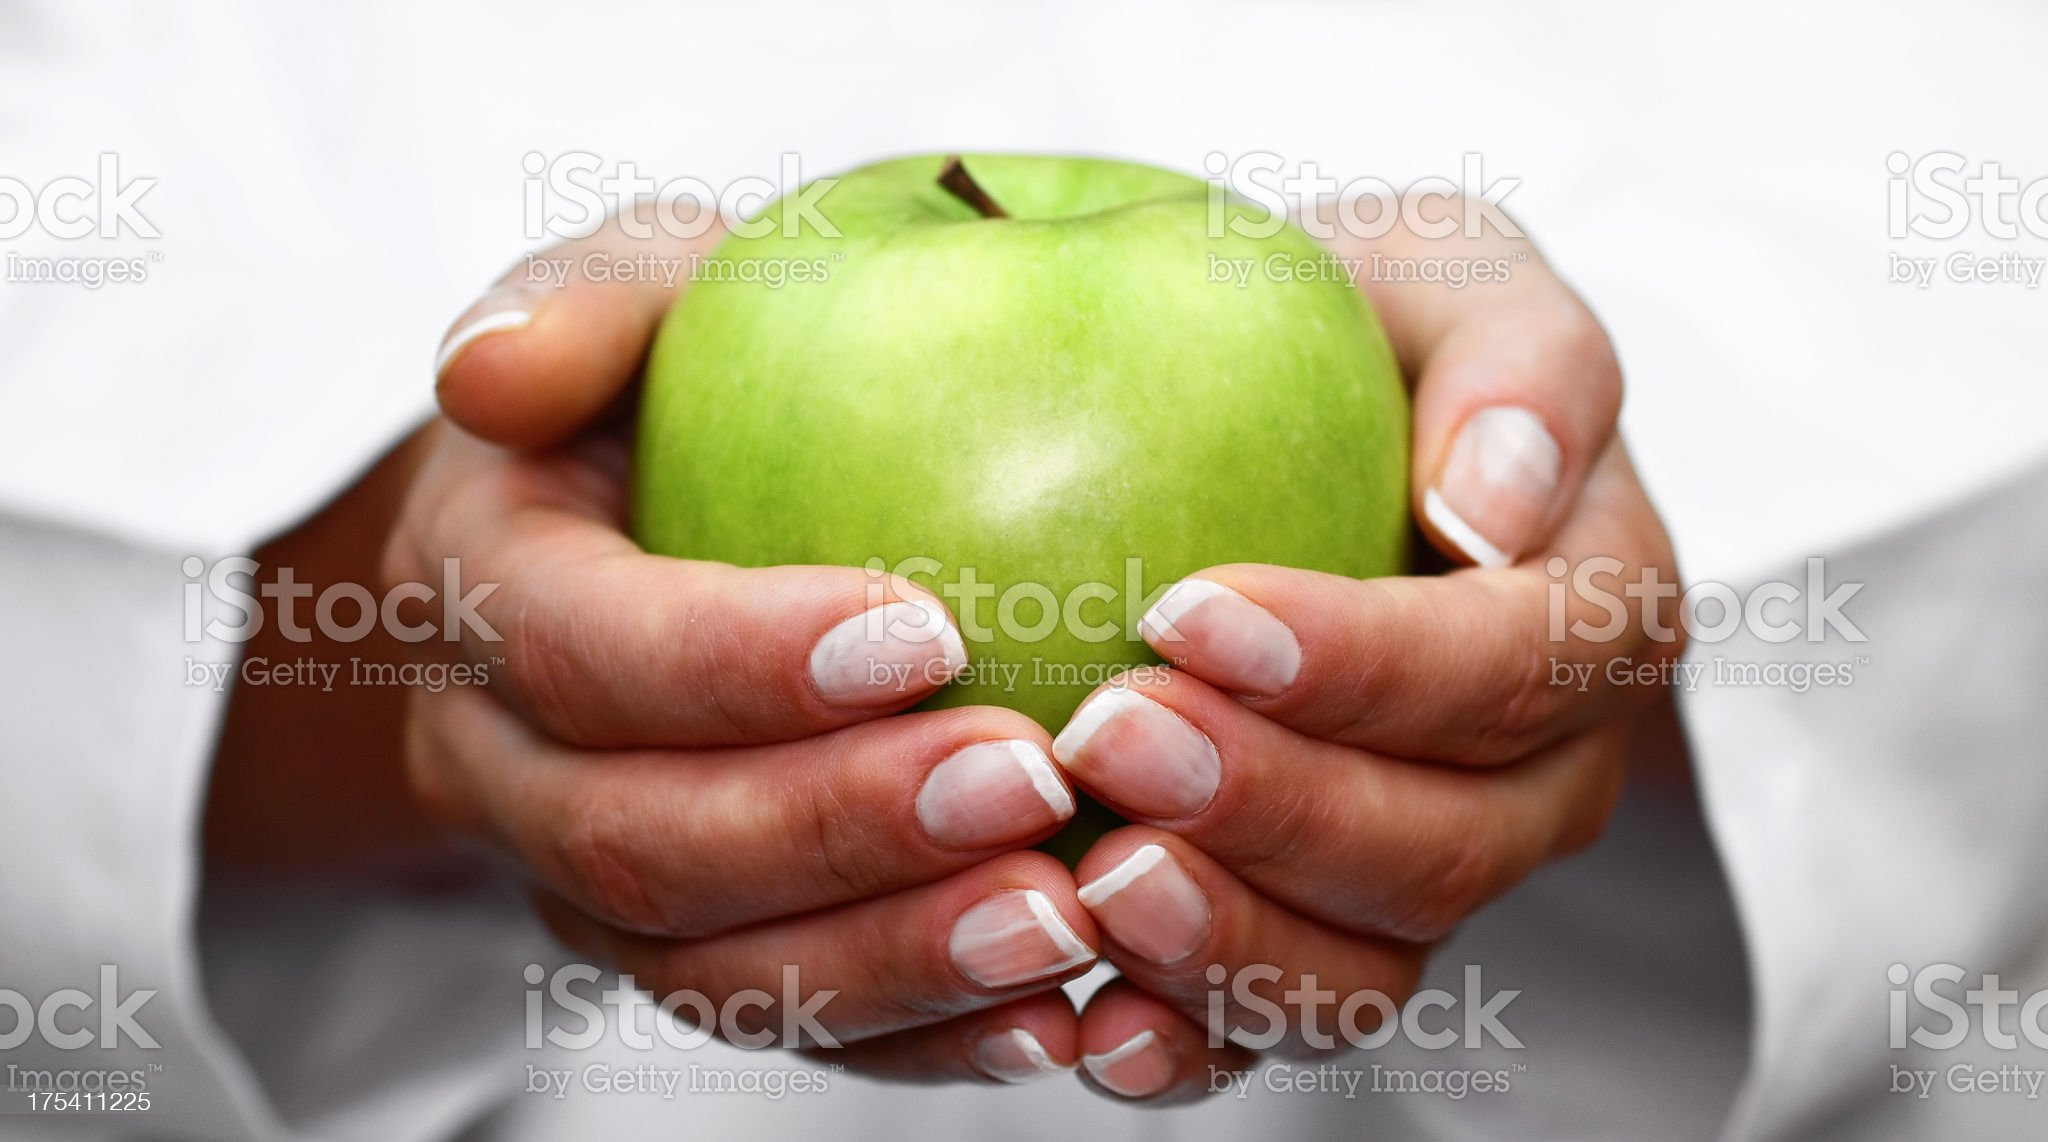 A woman with a manicure holding a green apple in her hands royalty-free stock photo